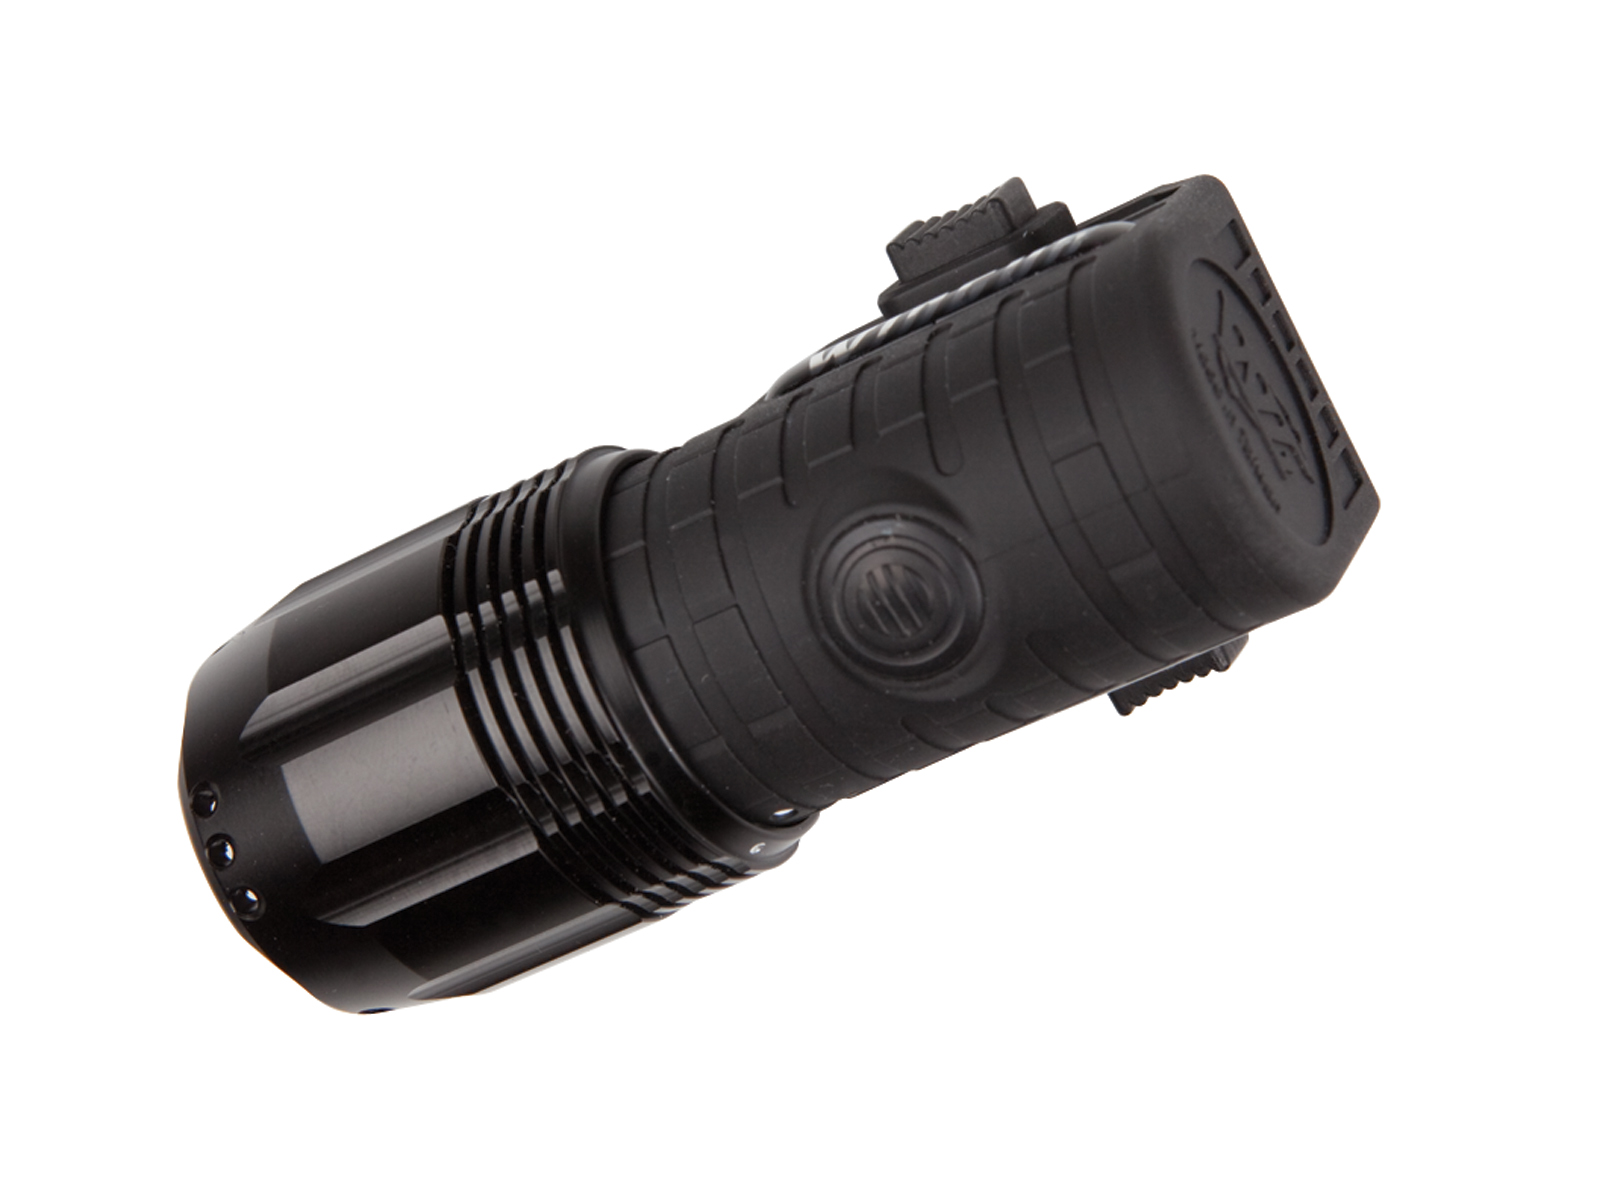 http://www.softair.ch/shop/bilder/GEAR/FLASHLIGHT/ASG_MFLED_3.jpg